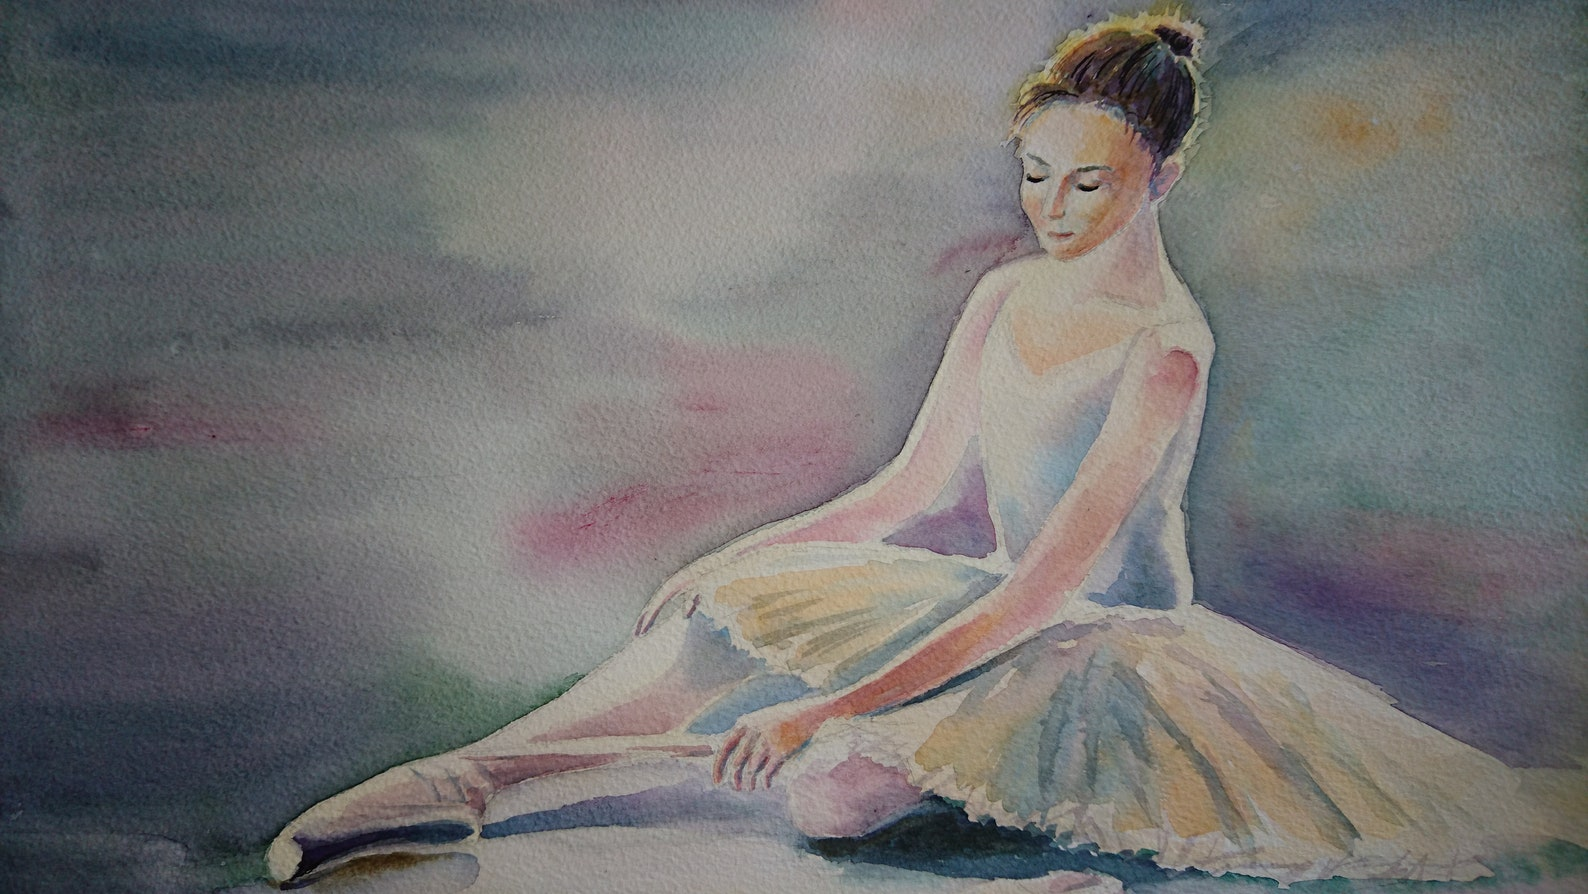 ballet dancer ballerina with pointe shoes winsor & newton artist watercolour paper a3